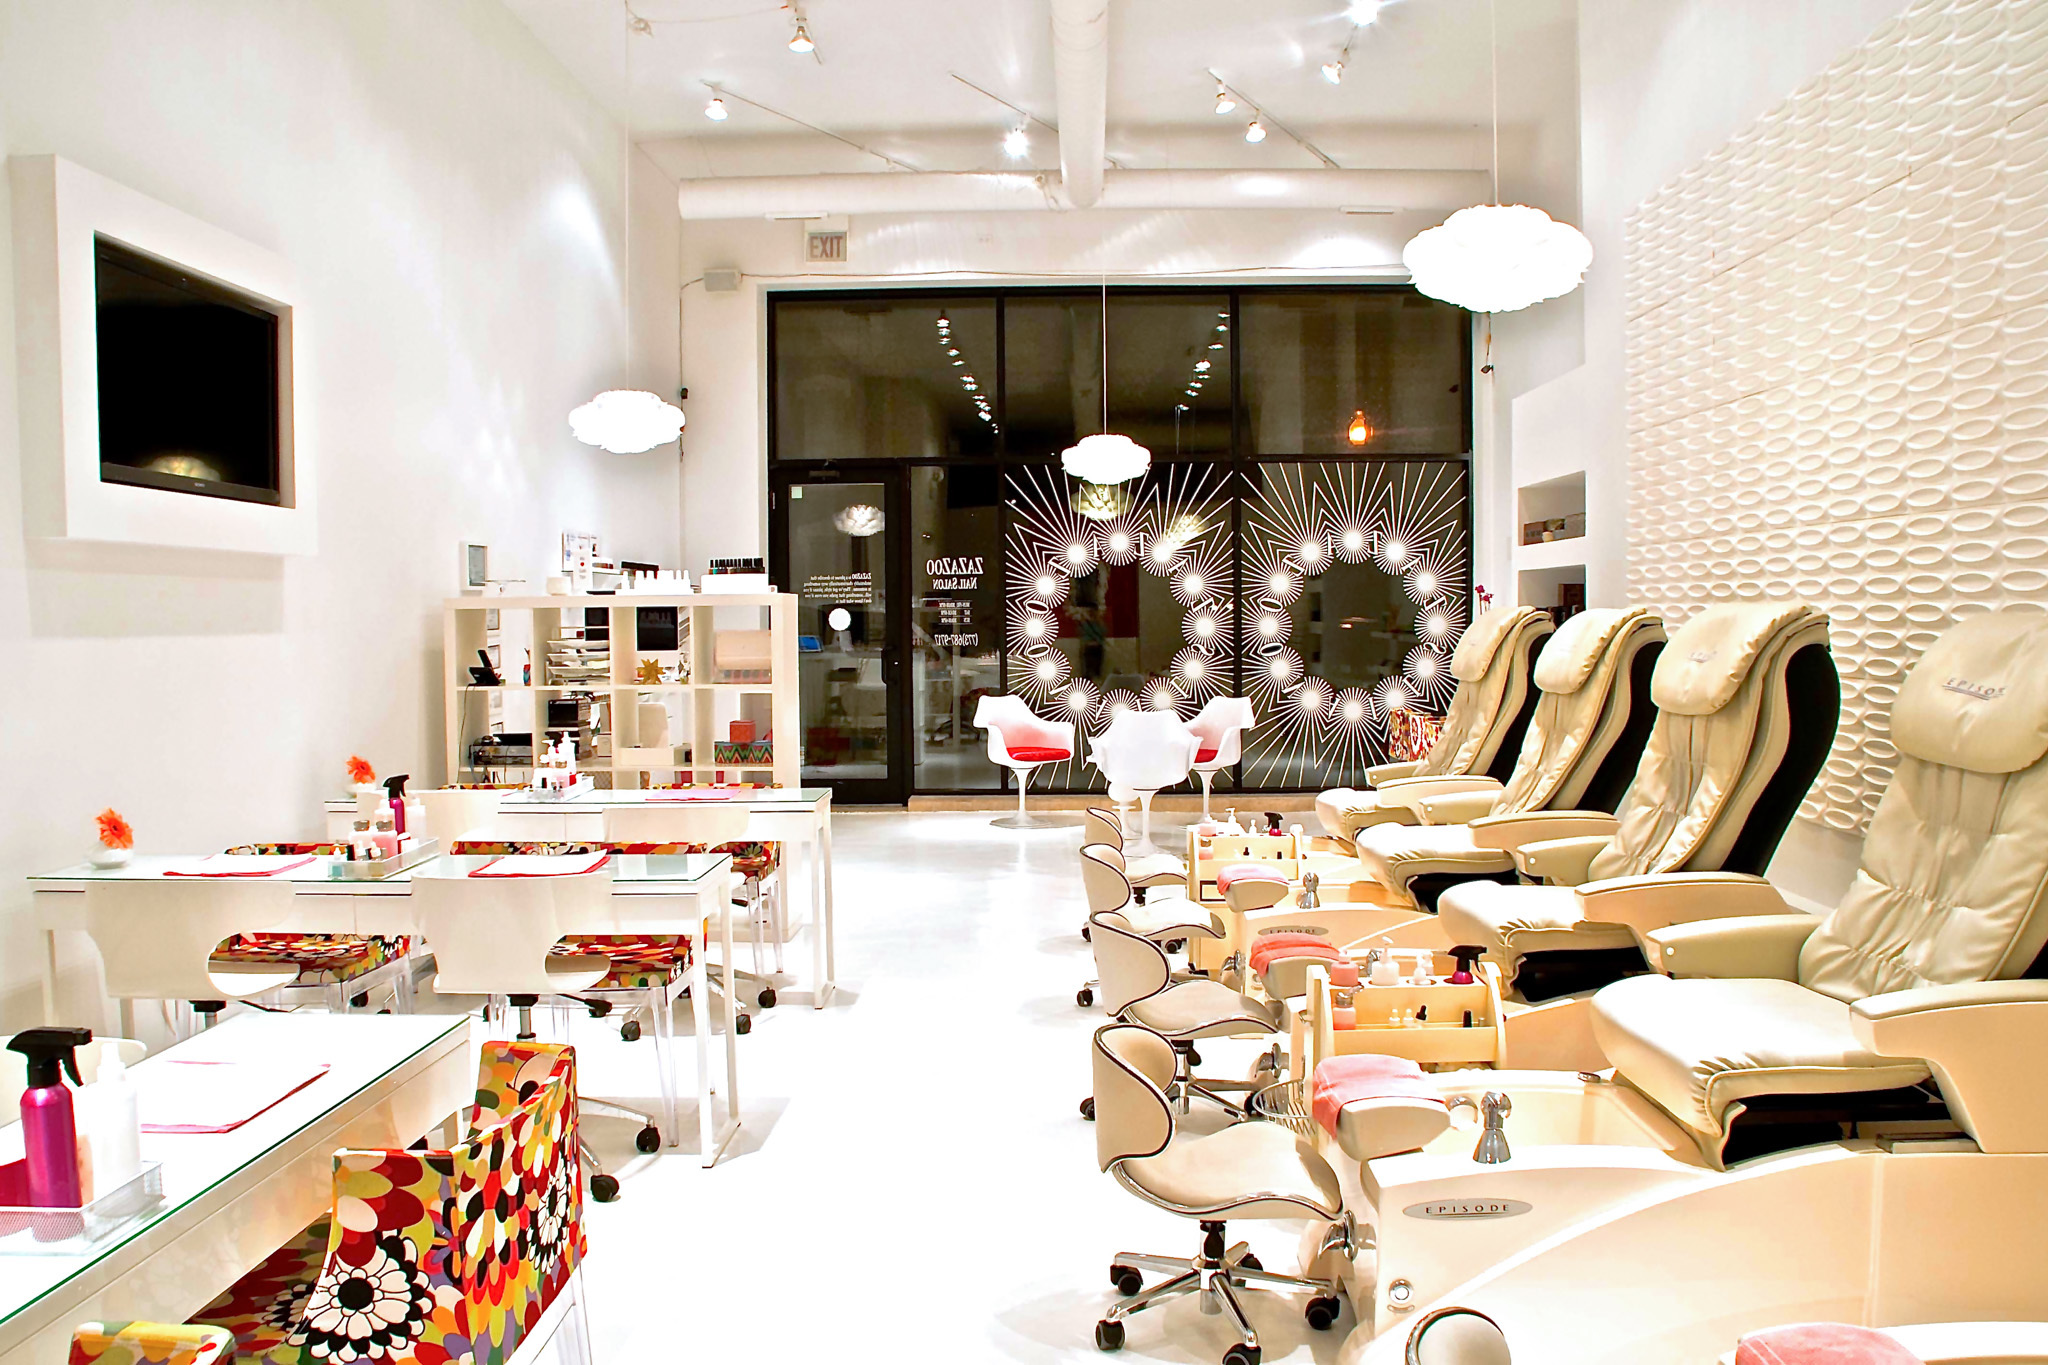 Building A Nail Salon From The Ground Up | My Decorative